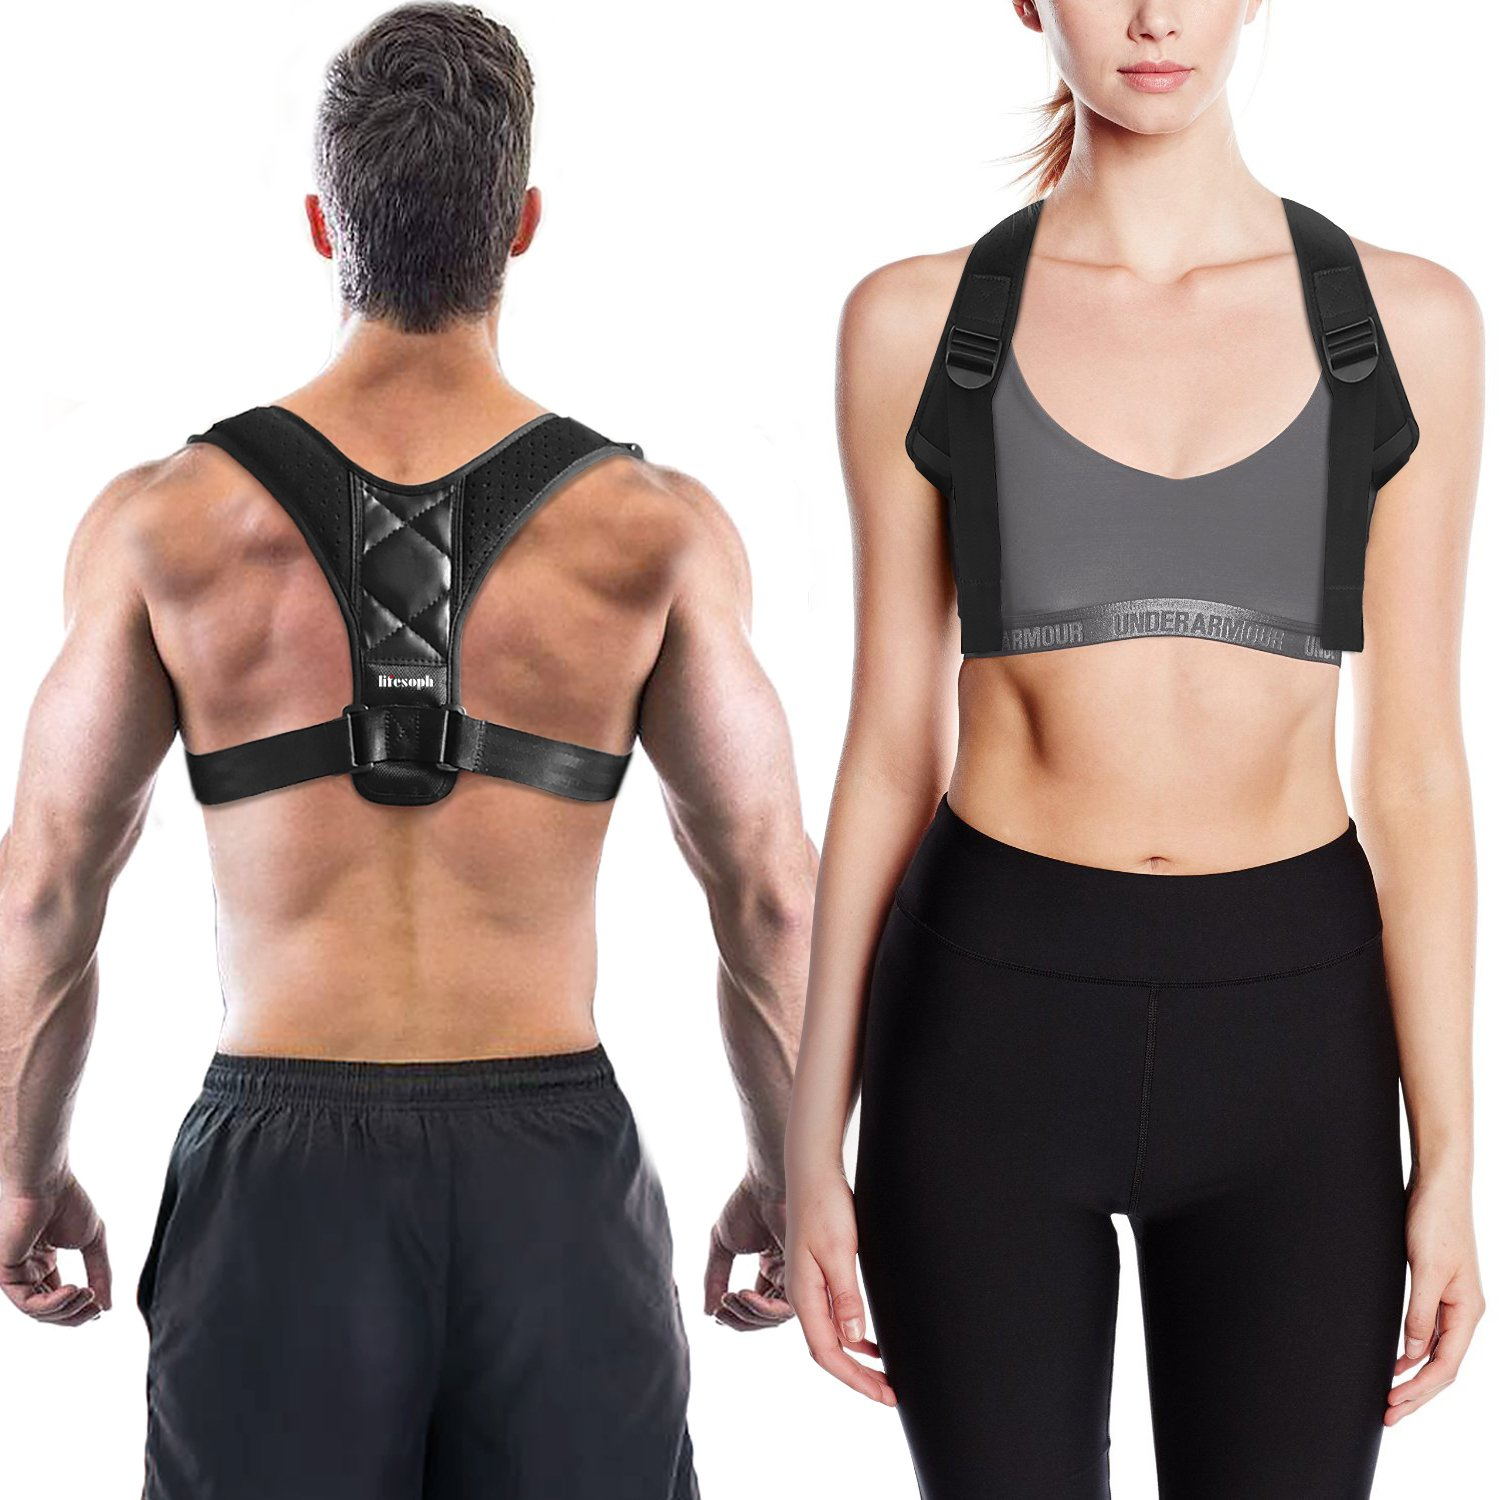 Posture Corrector for WomenandMen, Neck Pain Relief, Upright Go, Back Straightenerand Posture Brace-Chest Supports, Betterback Shark Tank - Clavicle Support Brace by Lifesoph